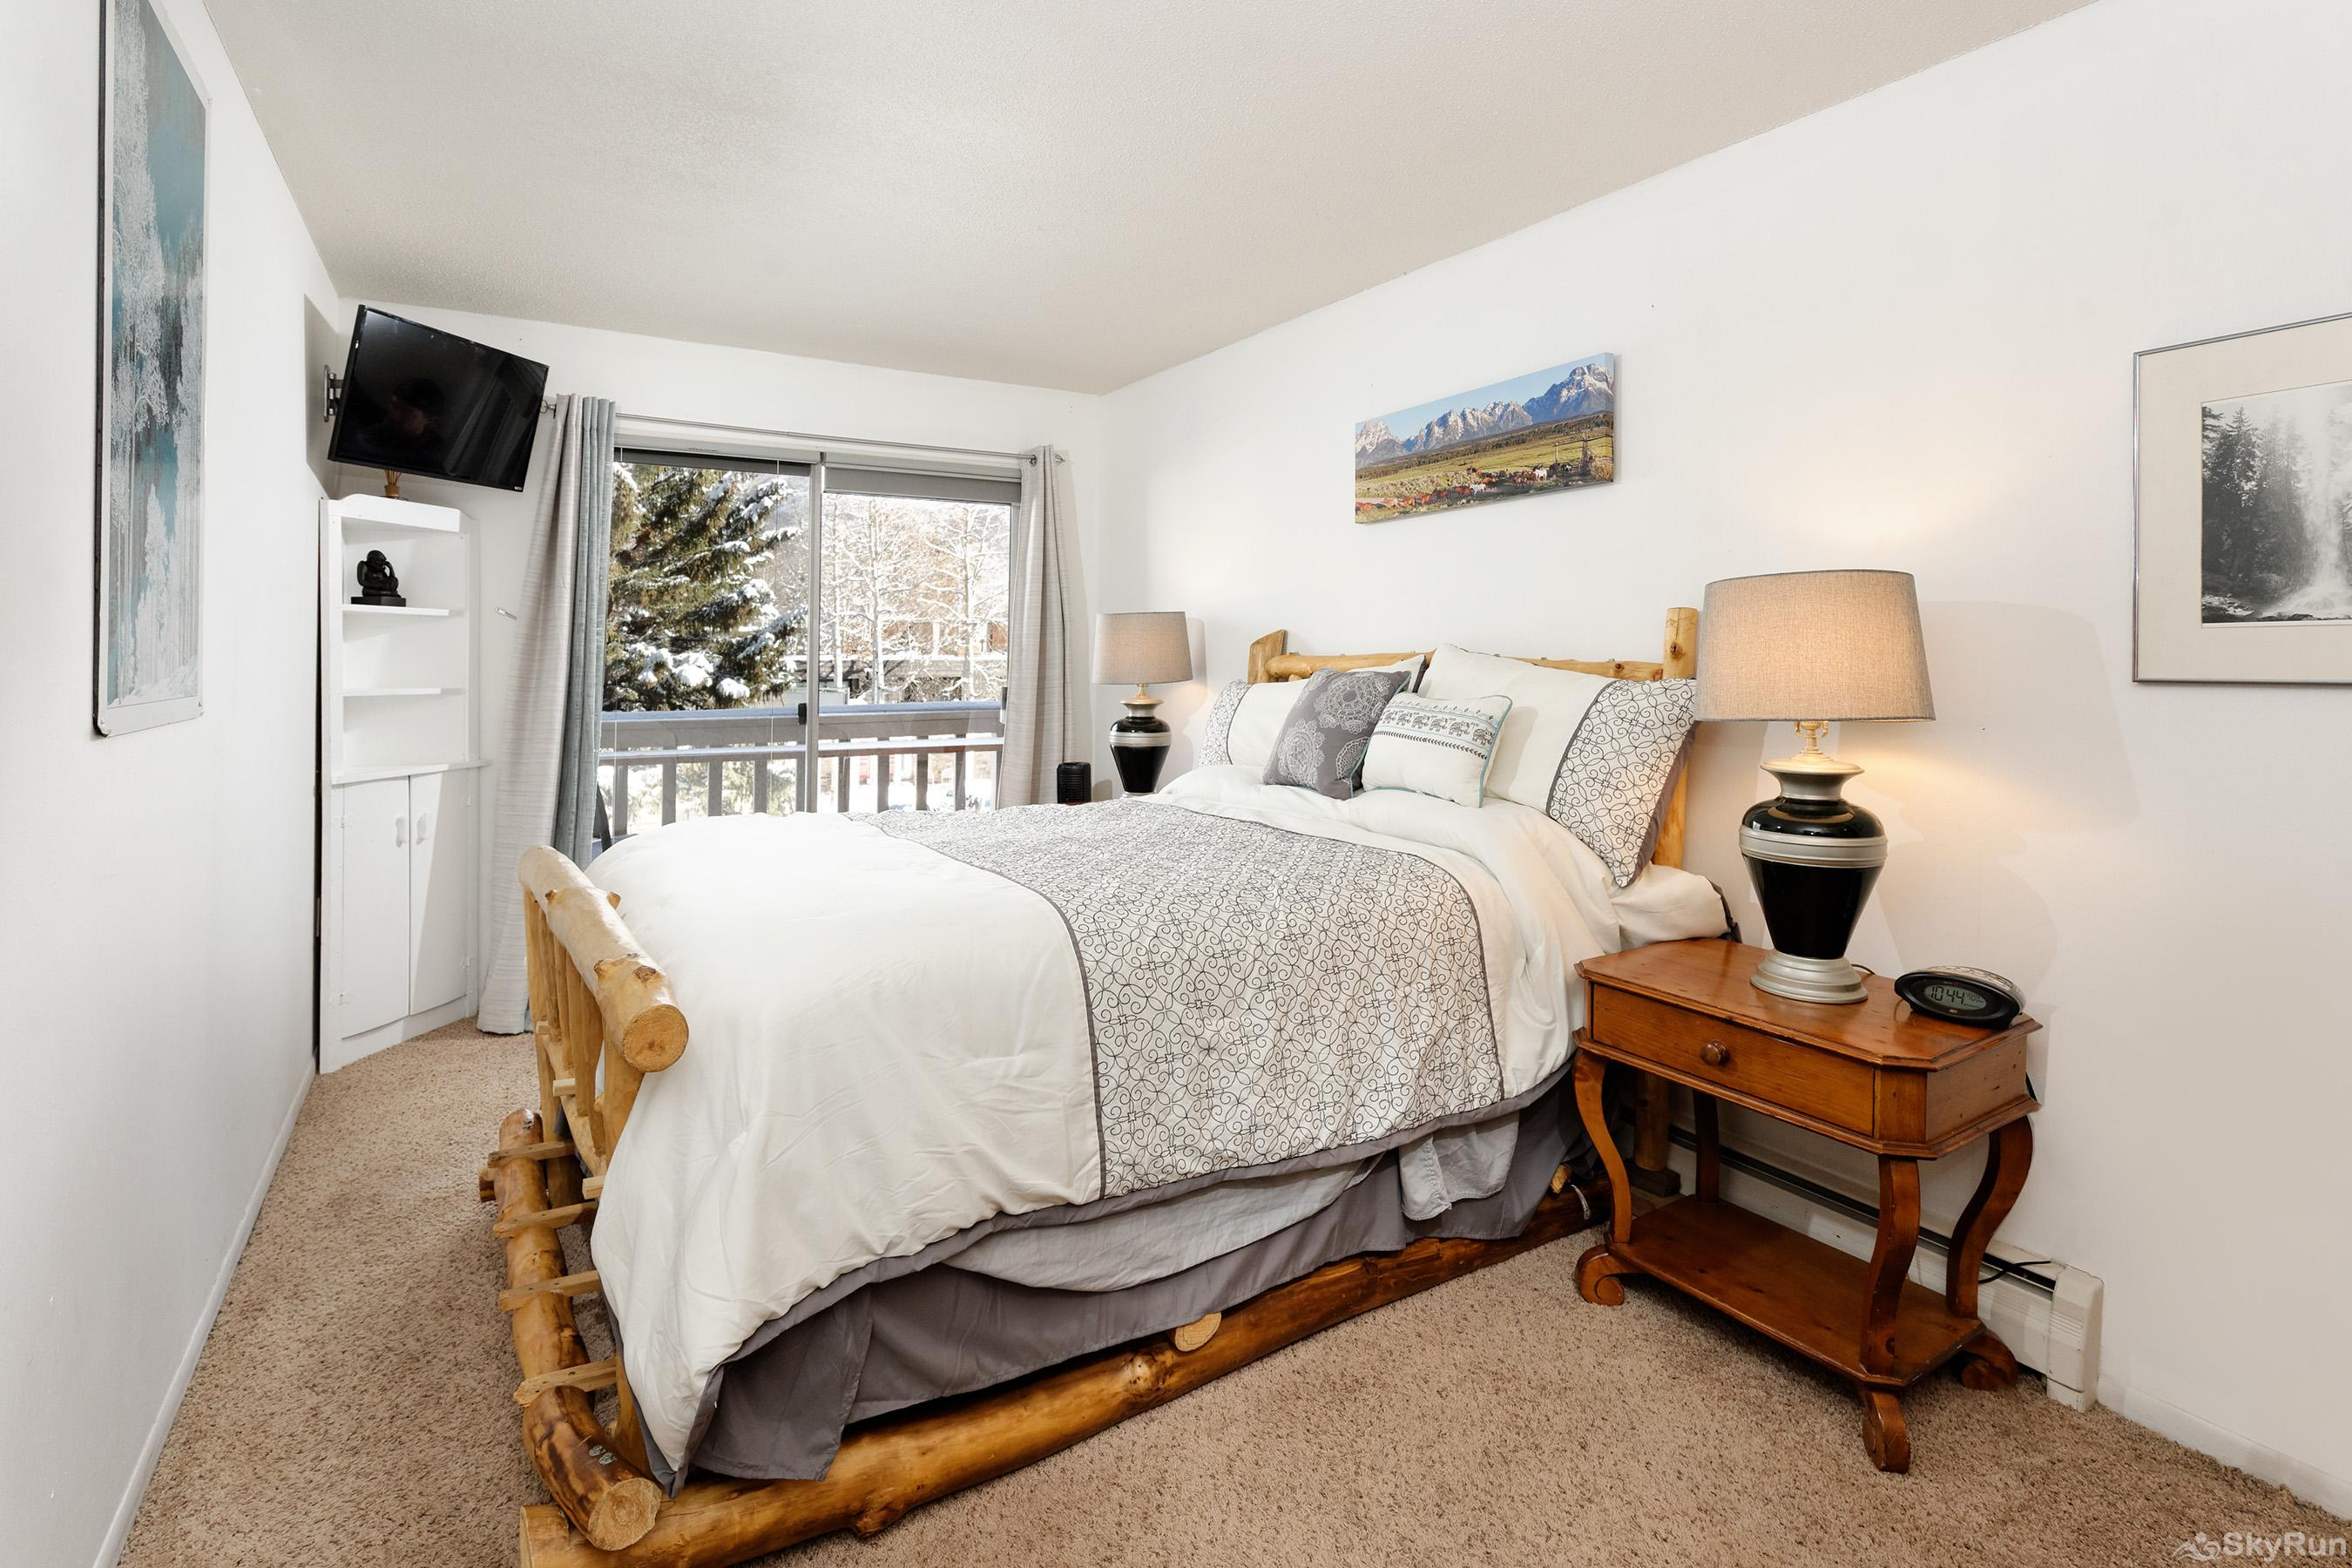 Timber Ridge Unit 2E Clean comfy bedroom for two